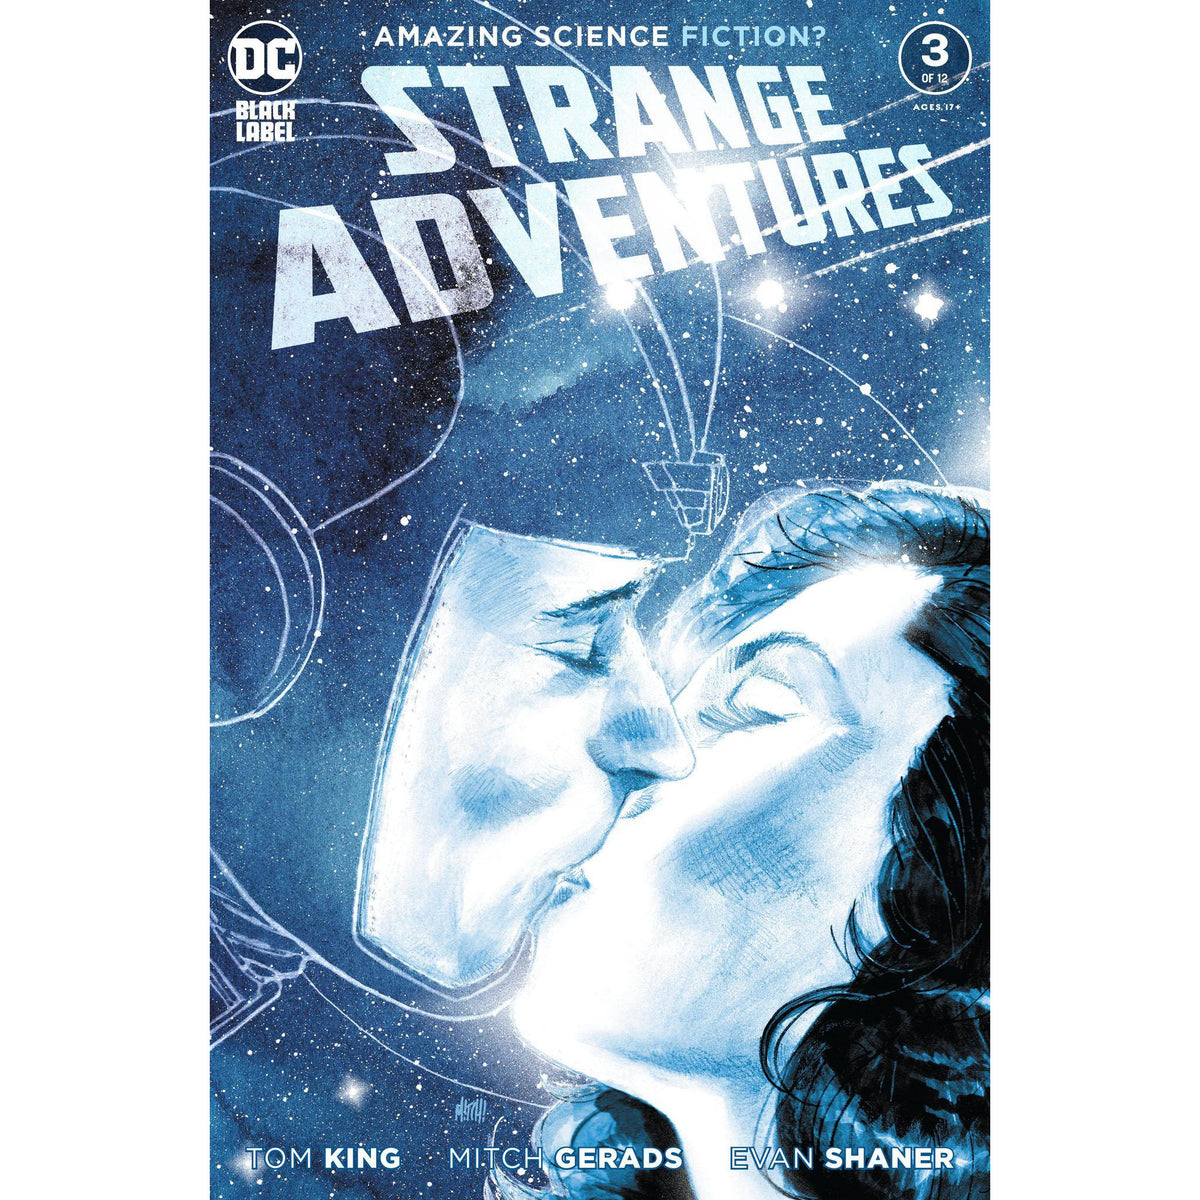 STRANGE ADVENTURES #3 (OF 12) - MAIN COVER A